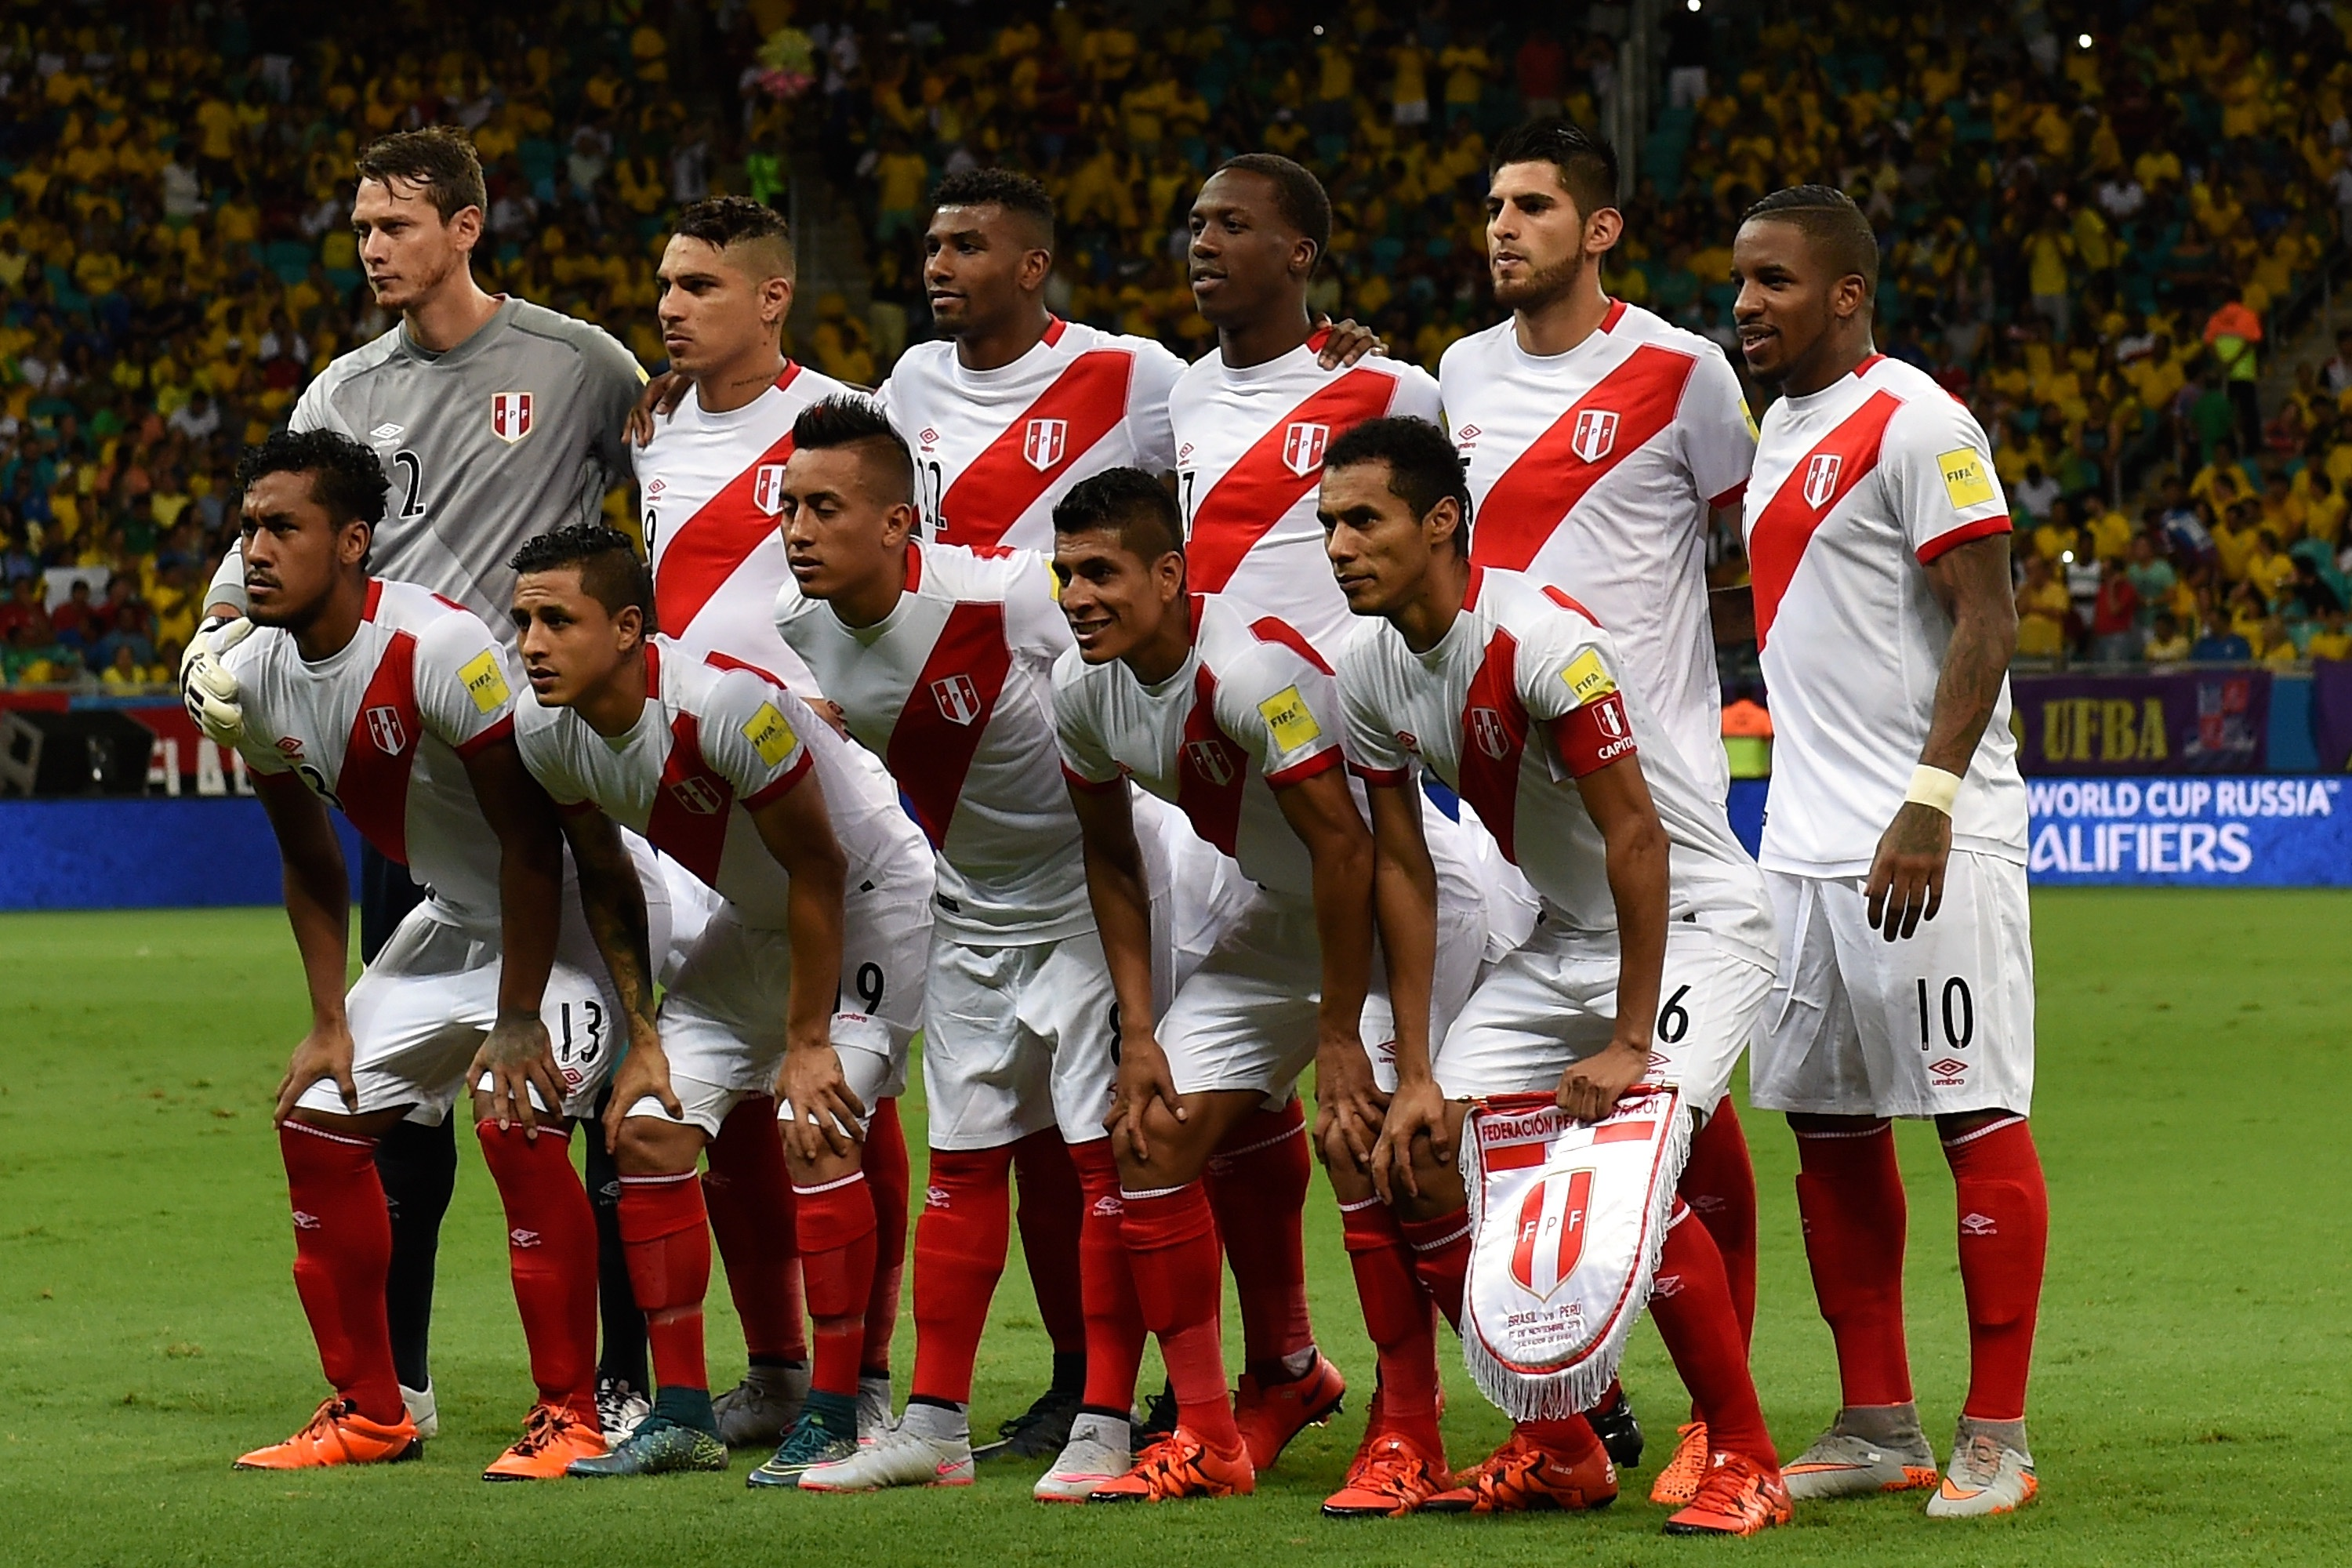 b7413abac8f Peru's players pose for a photo before a match between Brazil and Peru as  part of 2018 FIFA World Cup Russia Qualifiers. Photo by Buda Mendes/Getty  Images